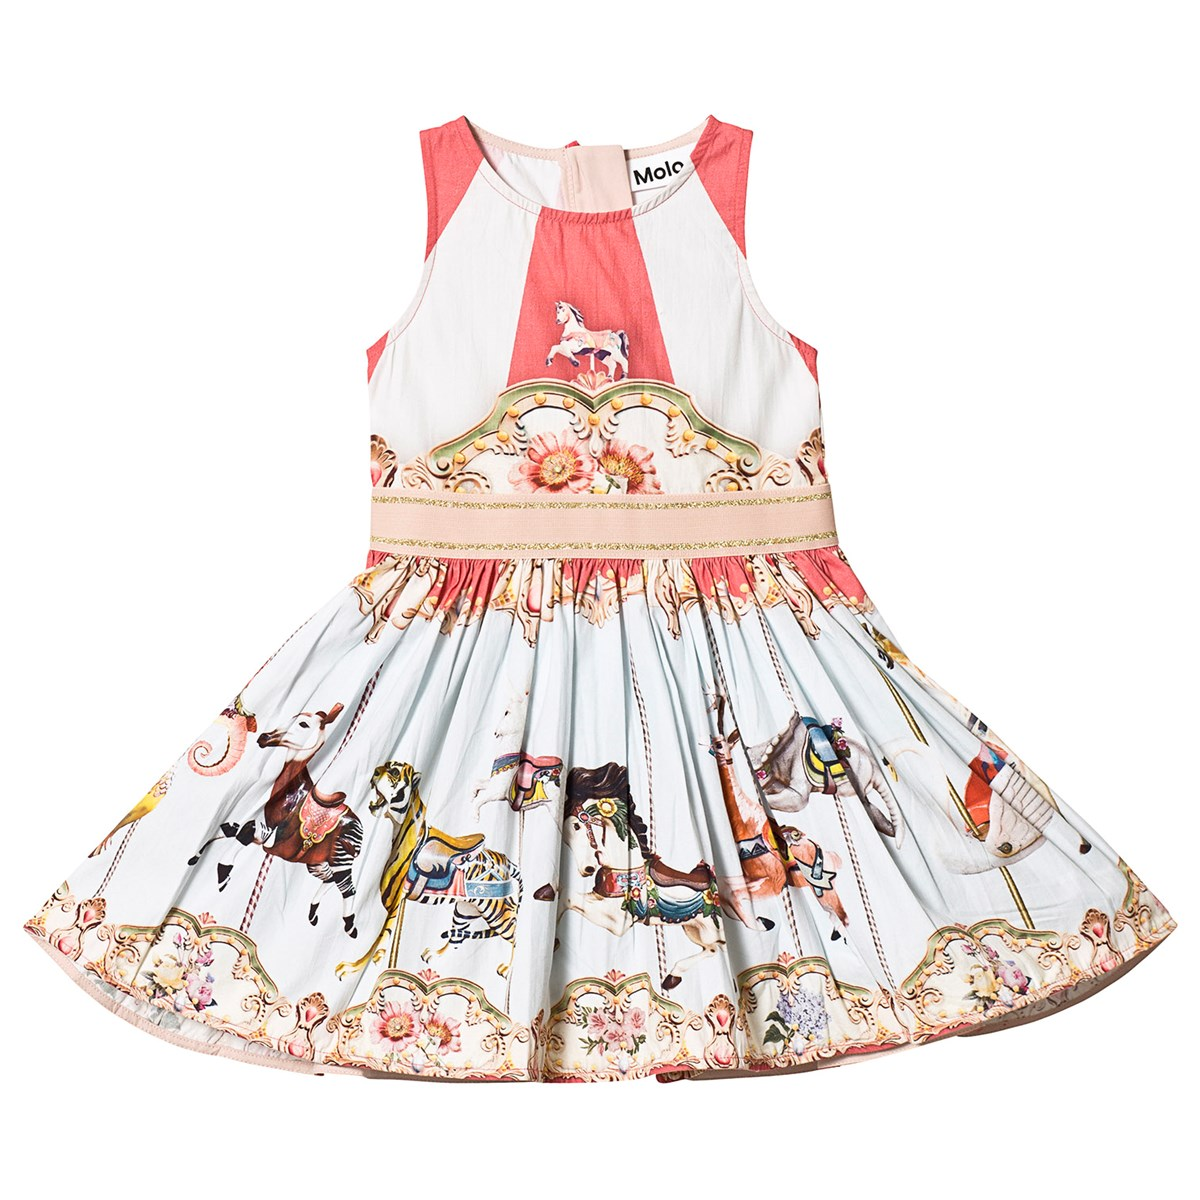 2d27ccde9772 Molo - Carli Dress Carousella - Babyshop.no